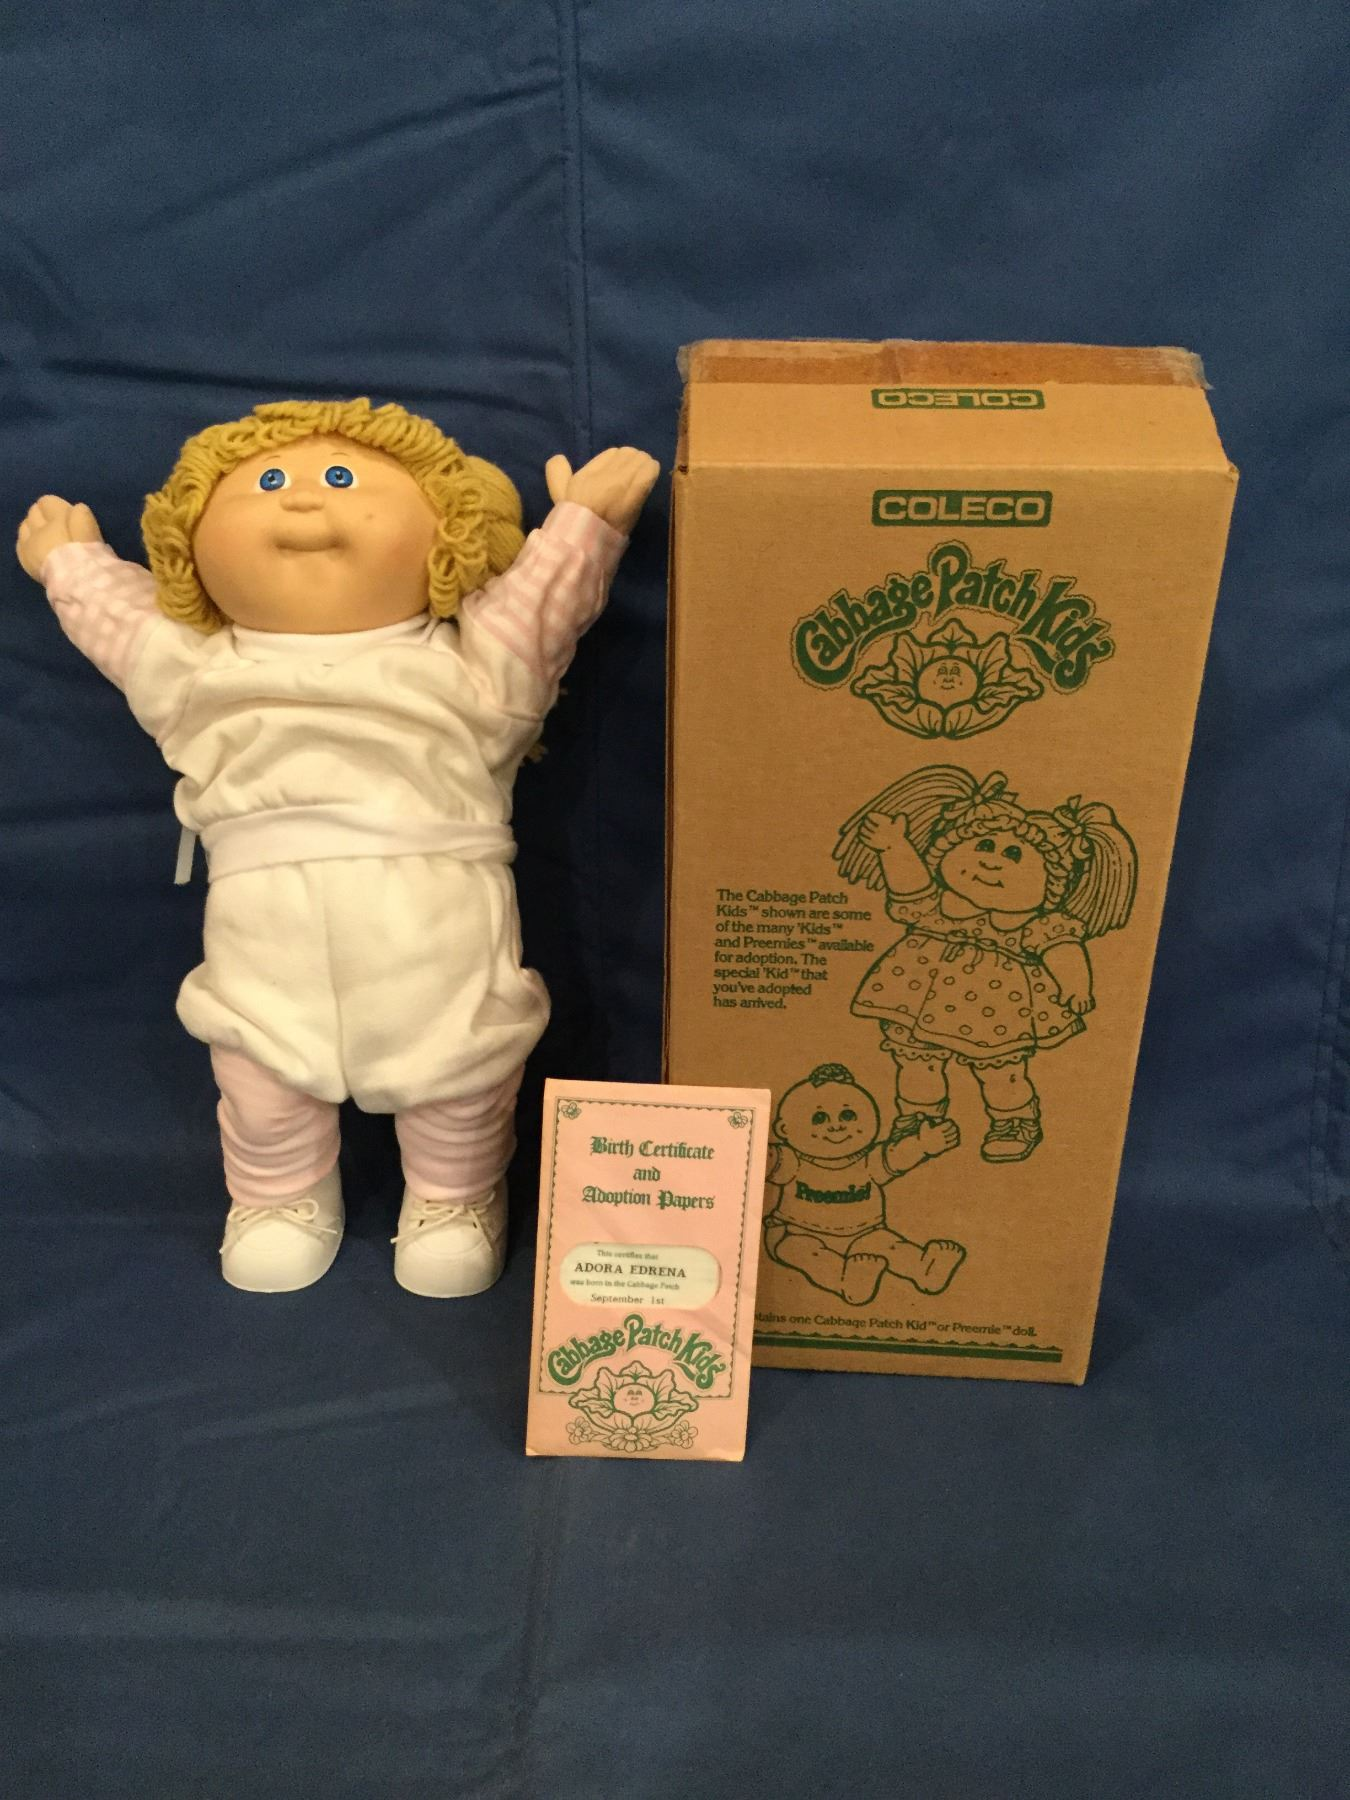 Cabbage Patch Kids box with doll and a certificate Adora